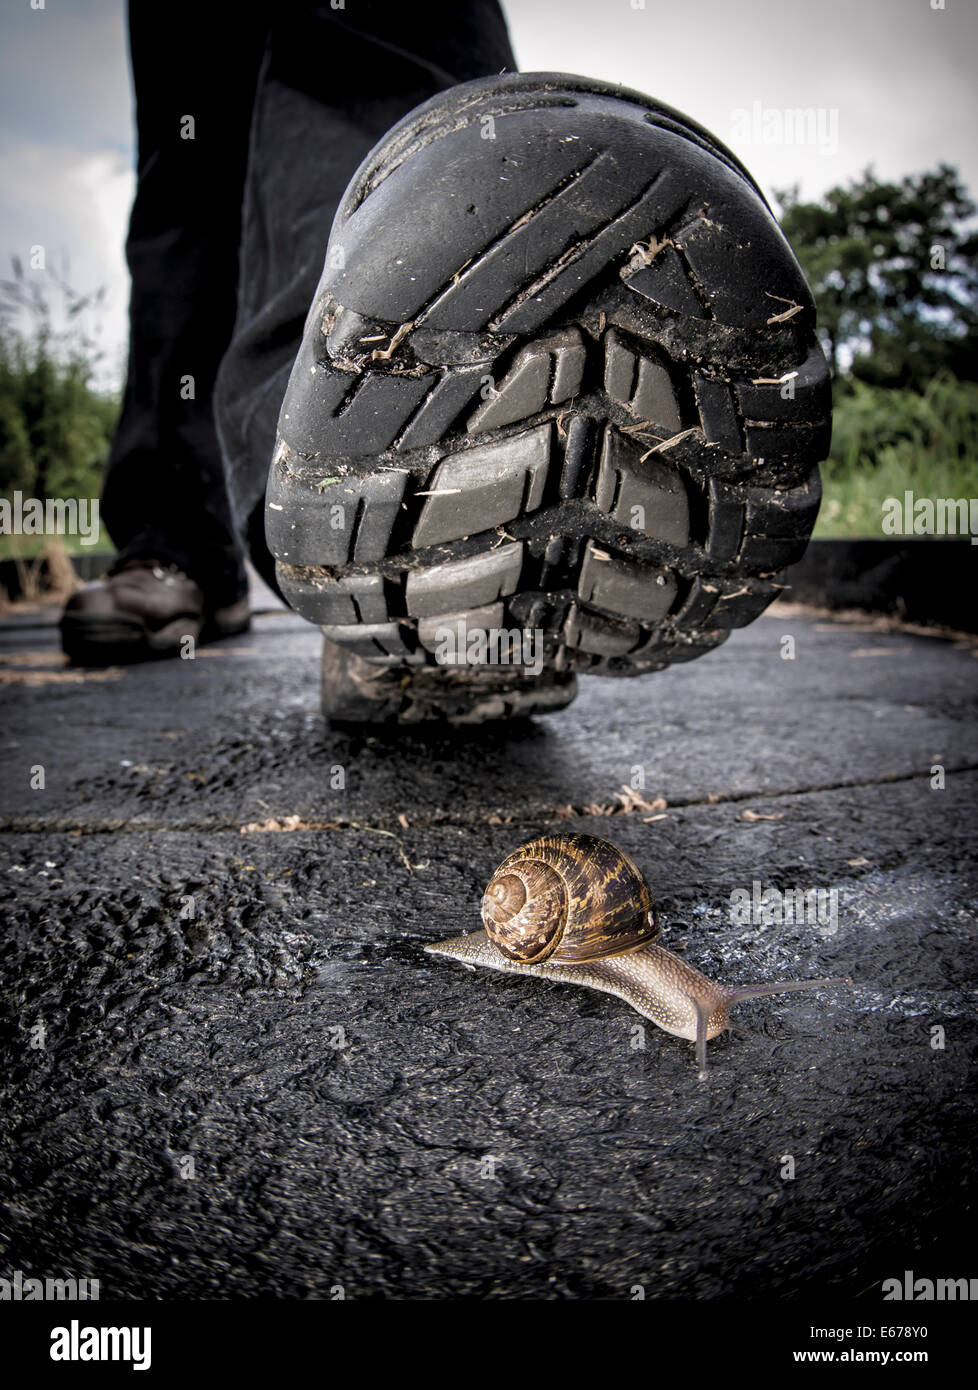 Person about to step on a snail - Stock Image